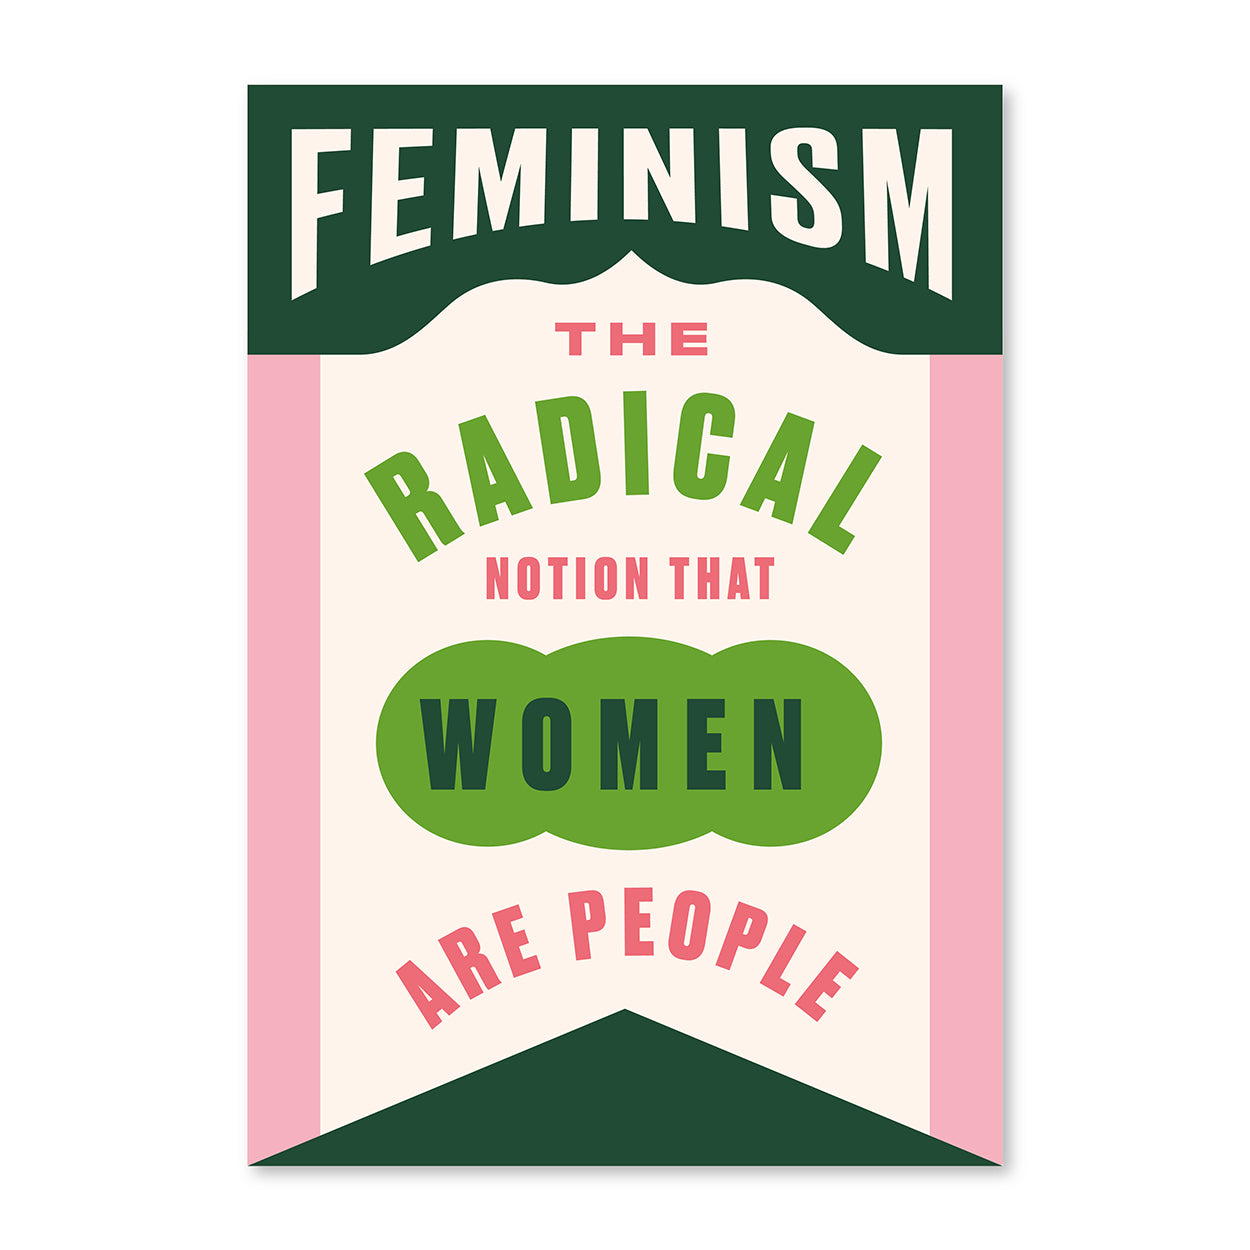 Feminism The Radical Notion A3 Poster Print